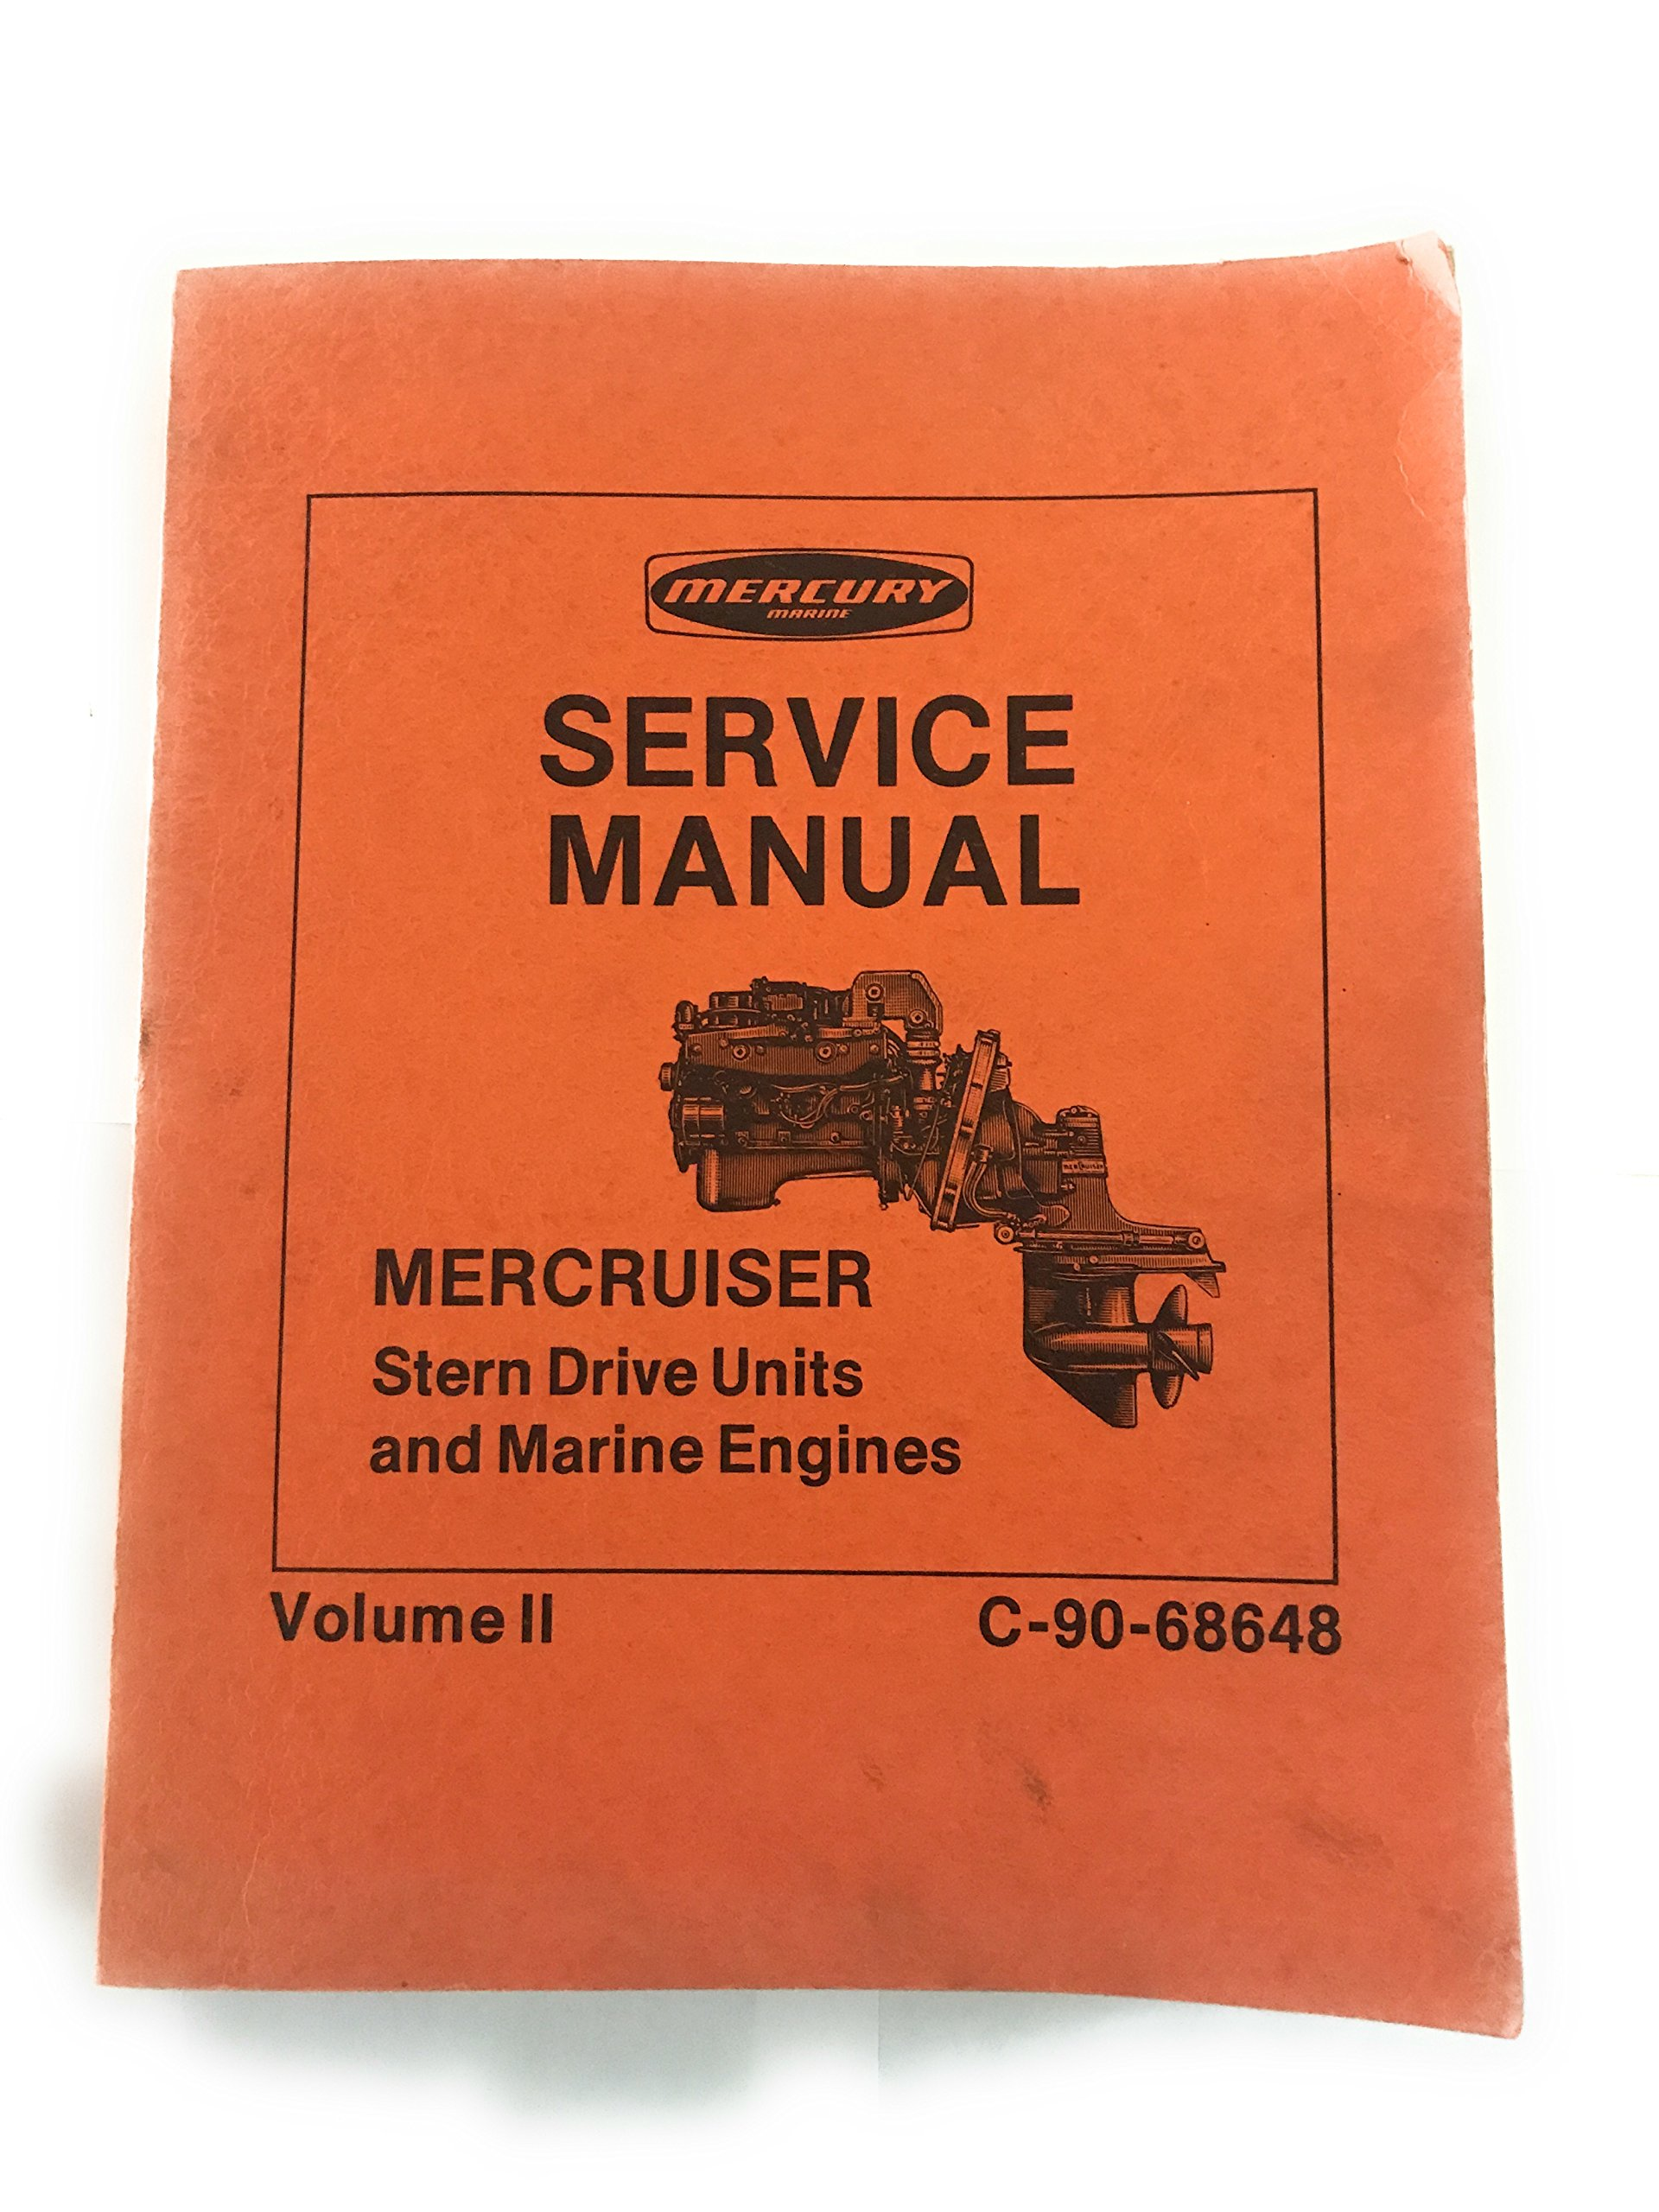 Mercury Service Manual Mercruiser Stern Drive Units and Marine Engines  Volume II C-90-68648 (Section 6 Drive Systems, 60-thru-165 and 888.